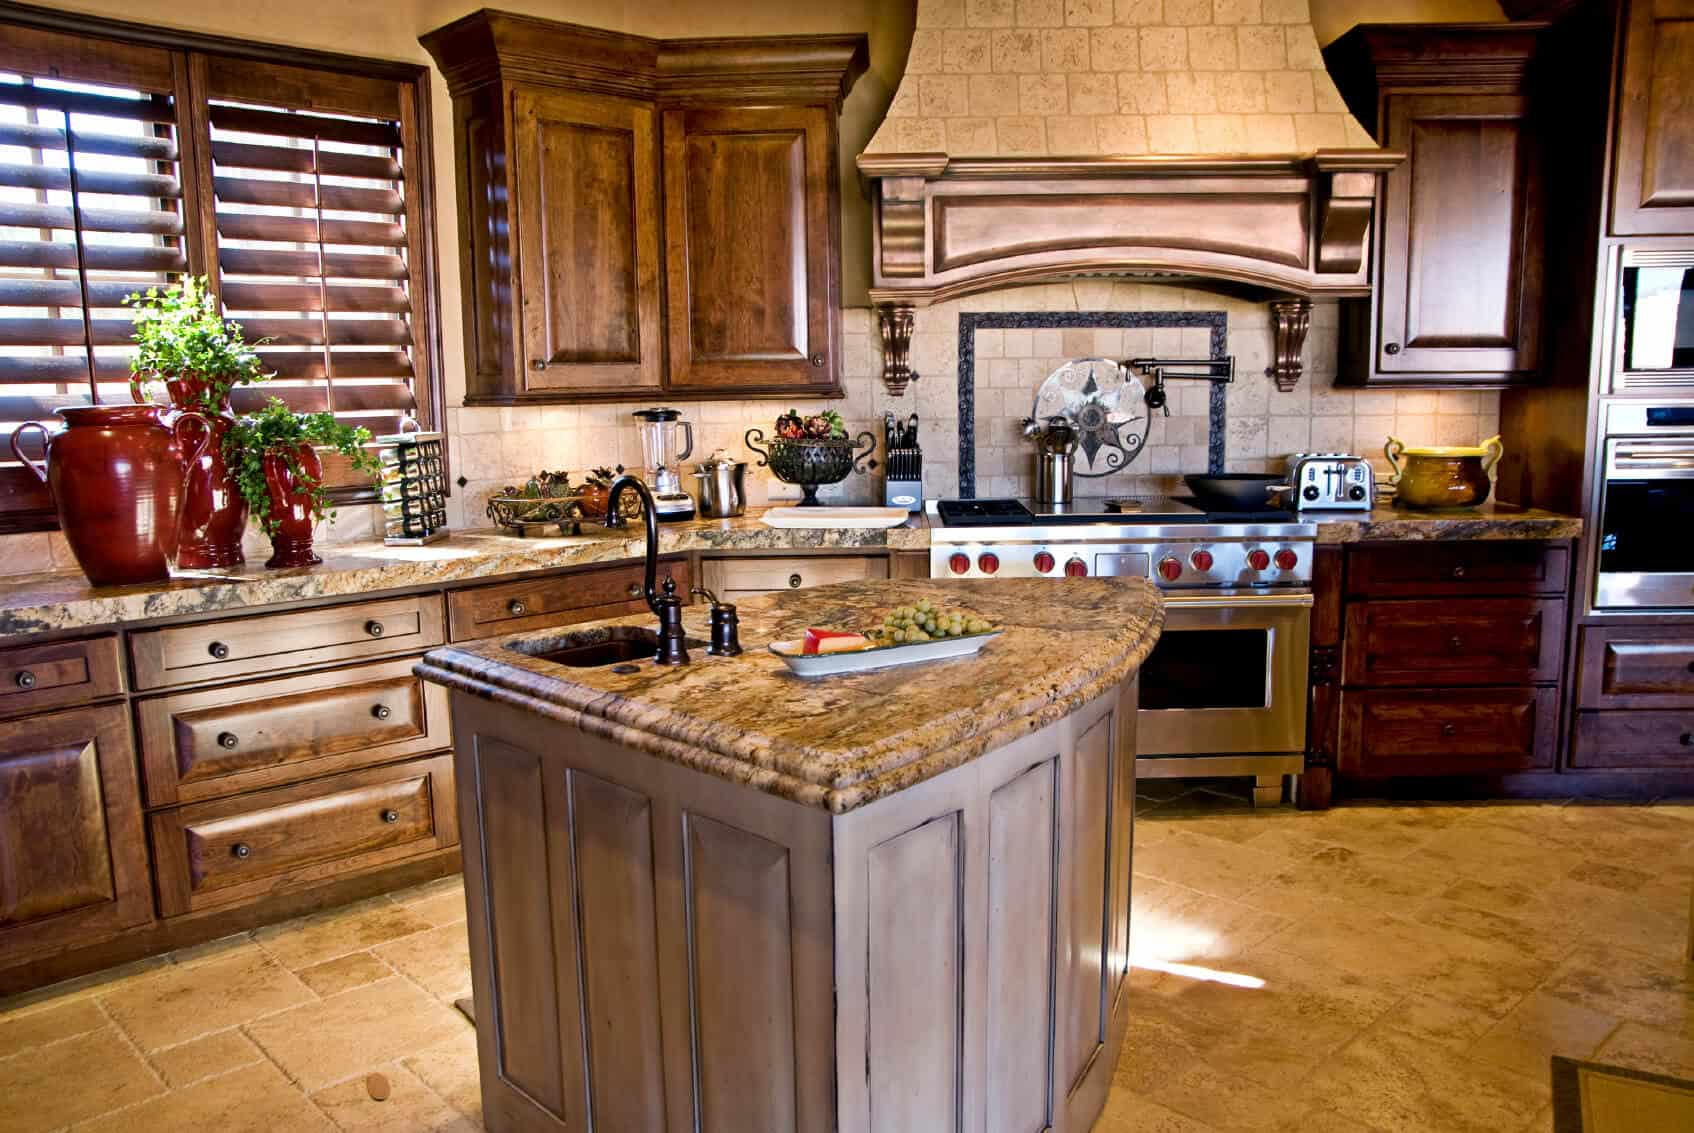 Single wall kitchen with raised panel cabinets, a central island and tile flooring.